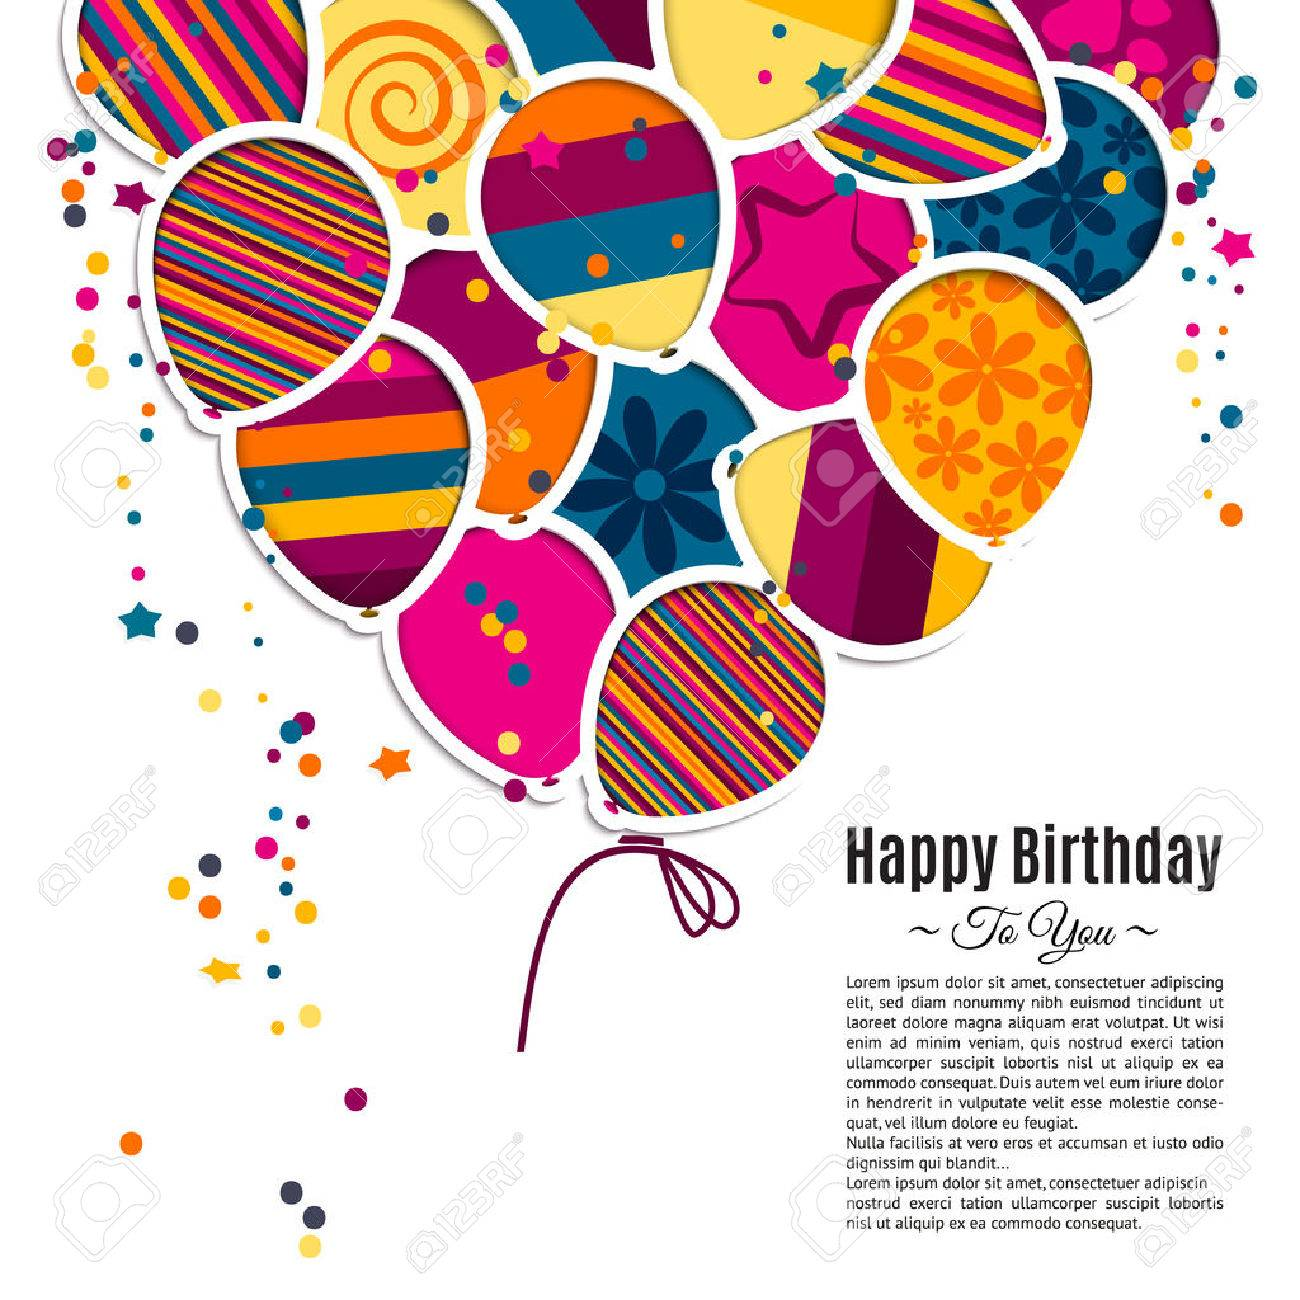 Vector birthday card with paper balloons in the style of cutouts. - 43834759